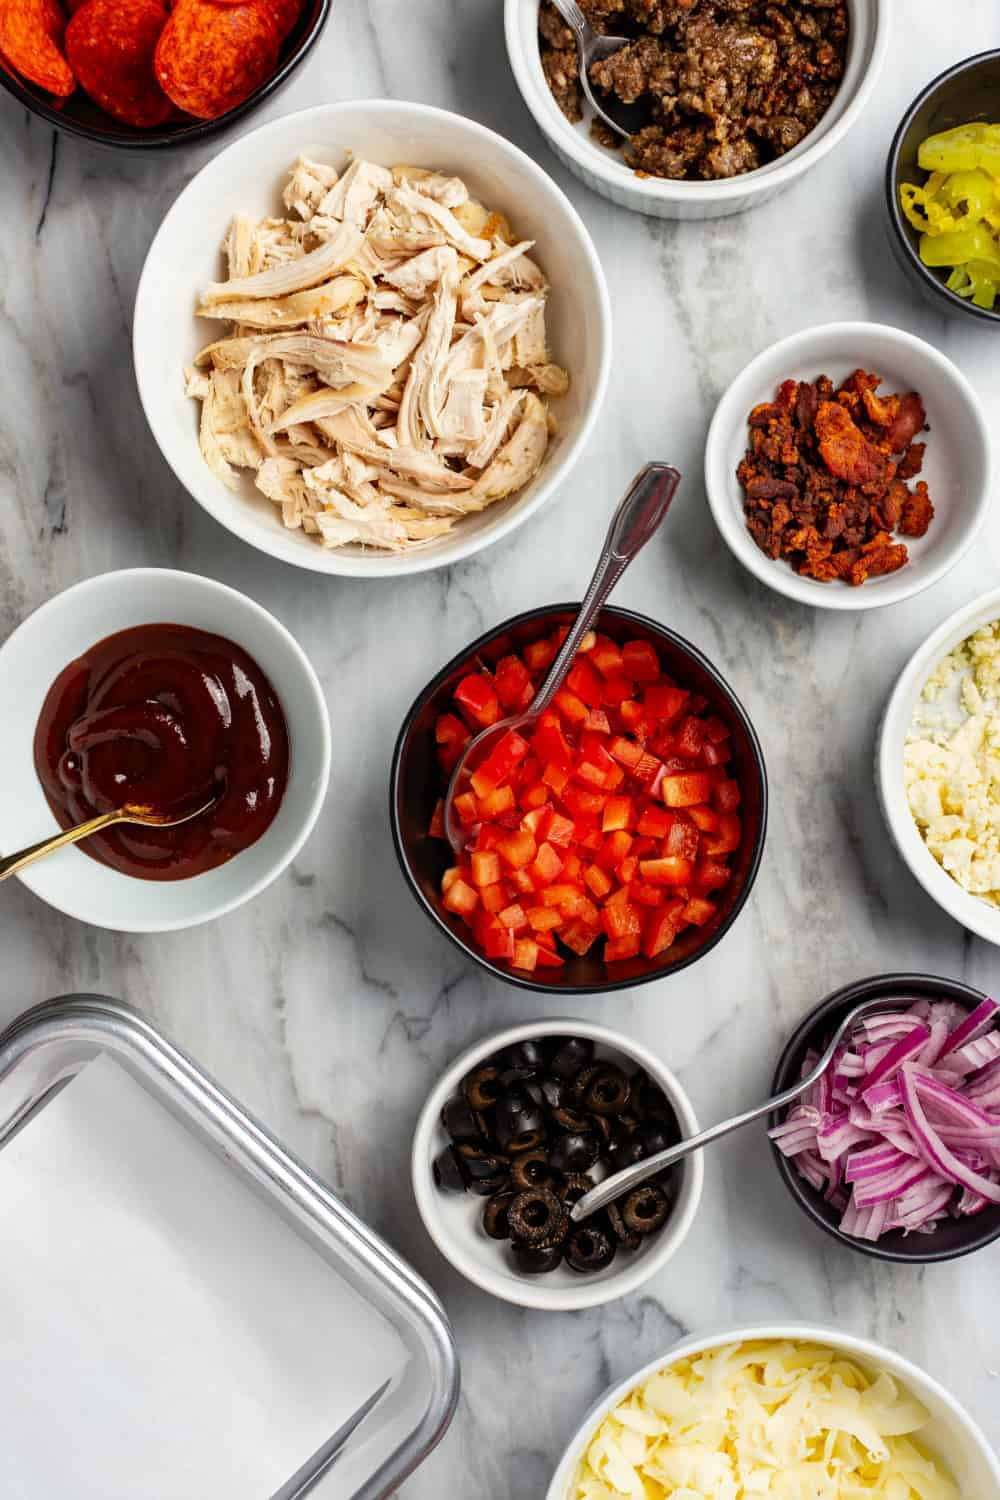 Assorted toppings and sauces for a DIY pizza bar in small bowls